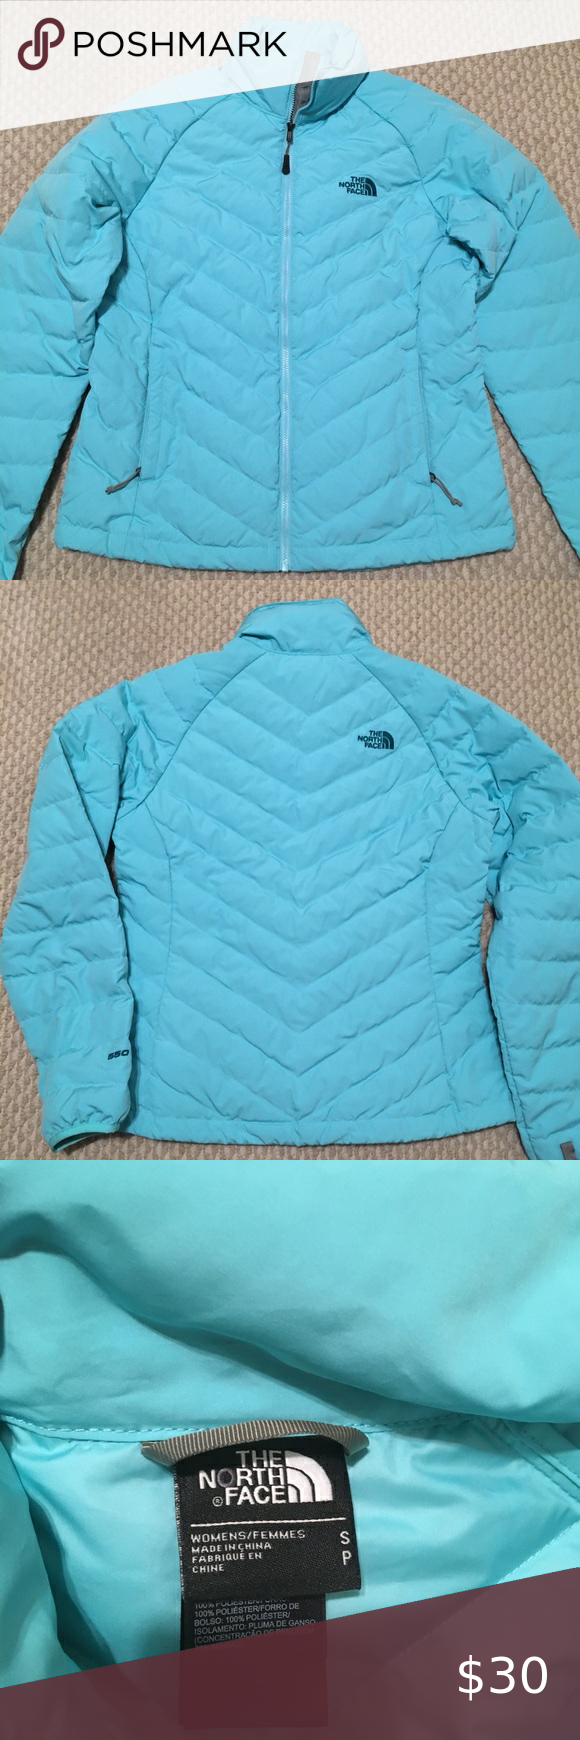 Women S North Face Down Jacket The North Face Jackets Down Jacket [ 1740 x 580 Pixel ]